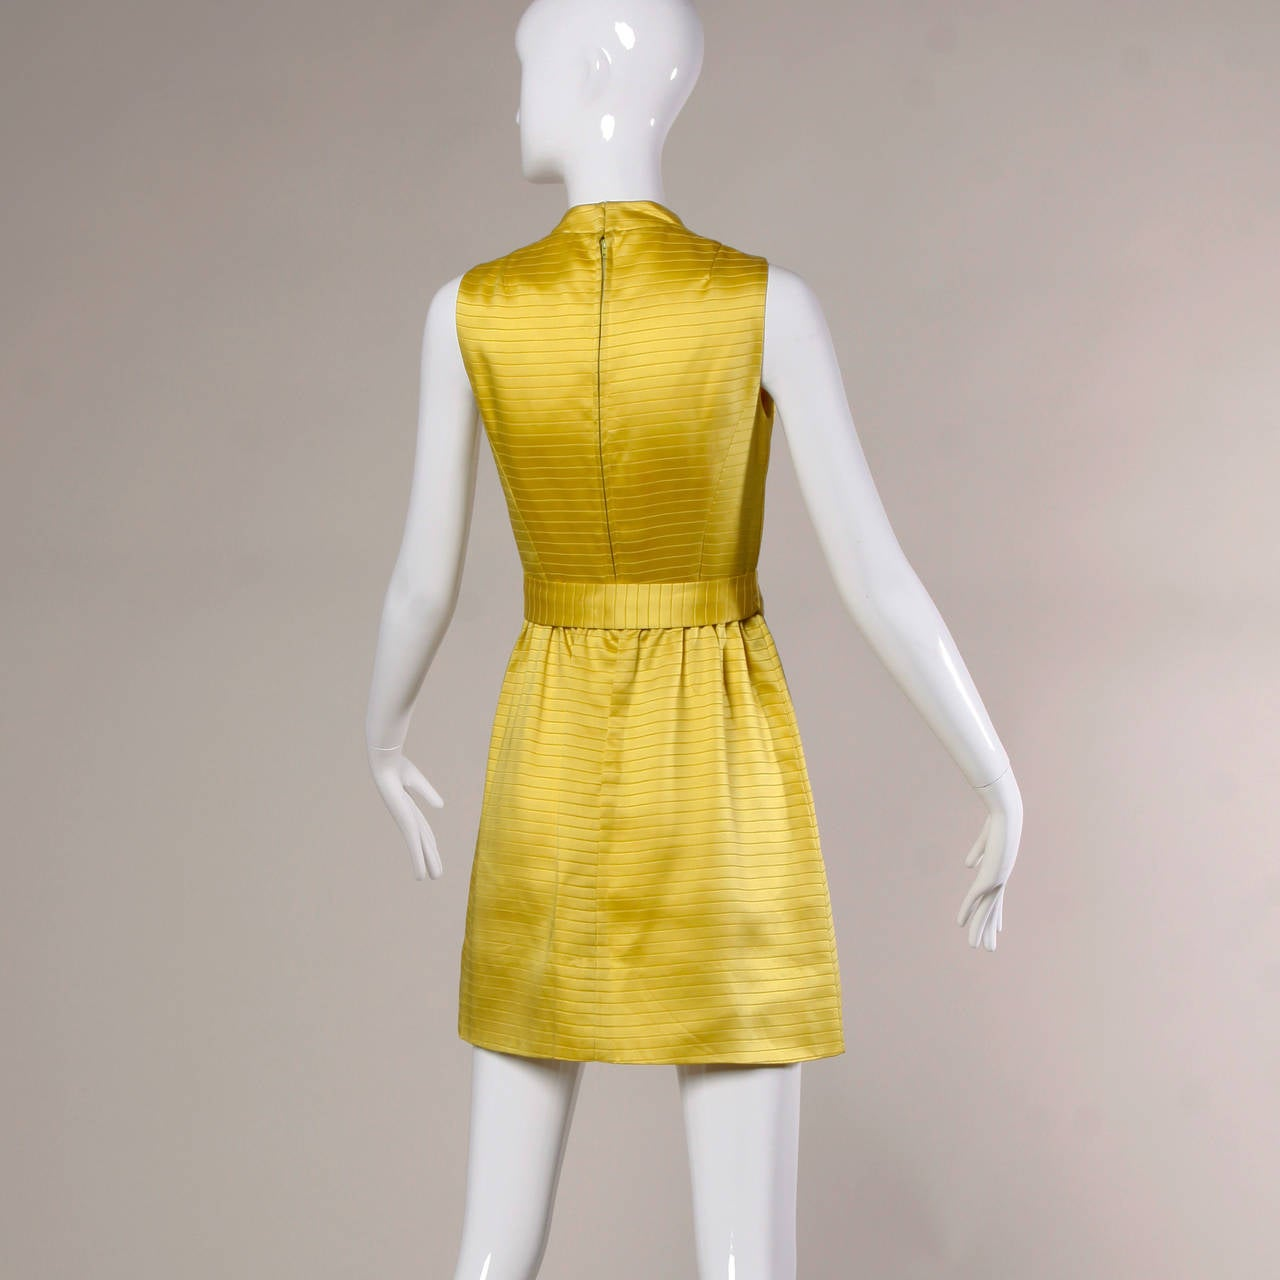 Darling 1960s Vintage Yellow Mini Dress with Rhinestone Buttons For Sale 1